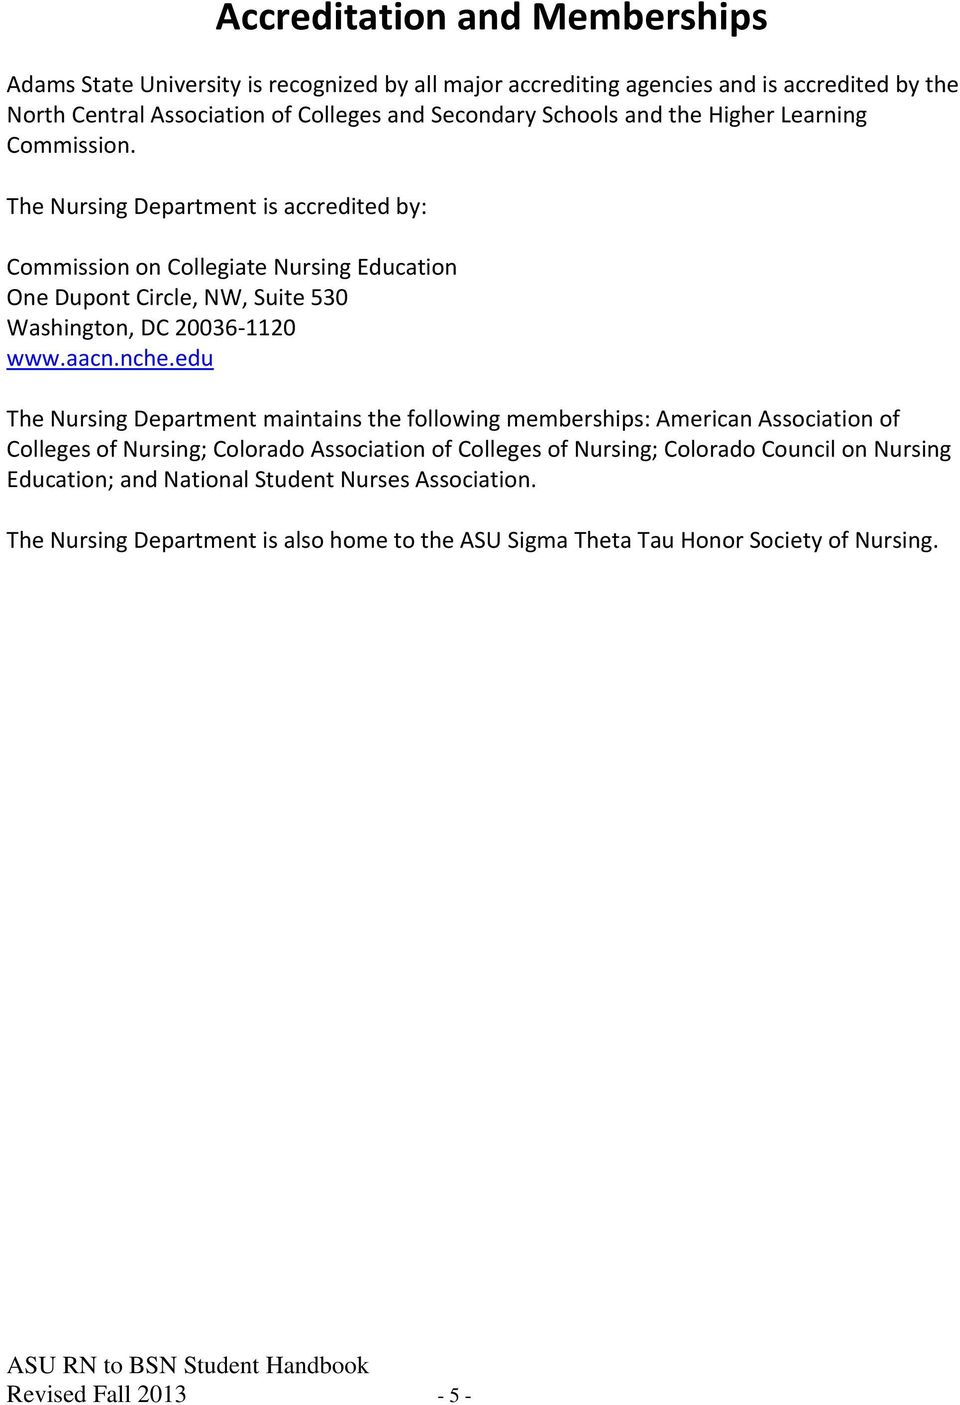 The Nursing Department is accredited by: Commission on Collegiate Nursing Education One Dupont Circle, NW, Suite 530 Washington, DC 20036-1120 www.aacn.nche.